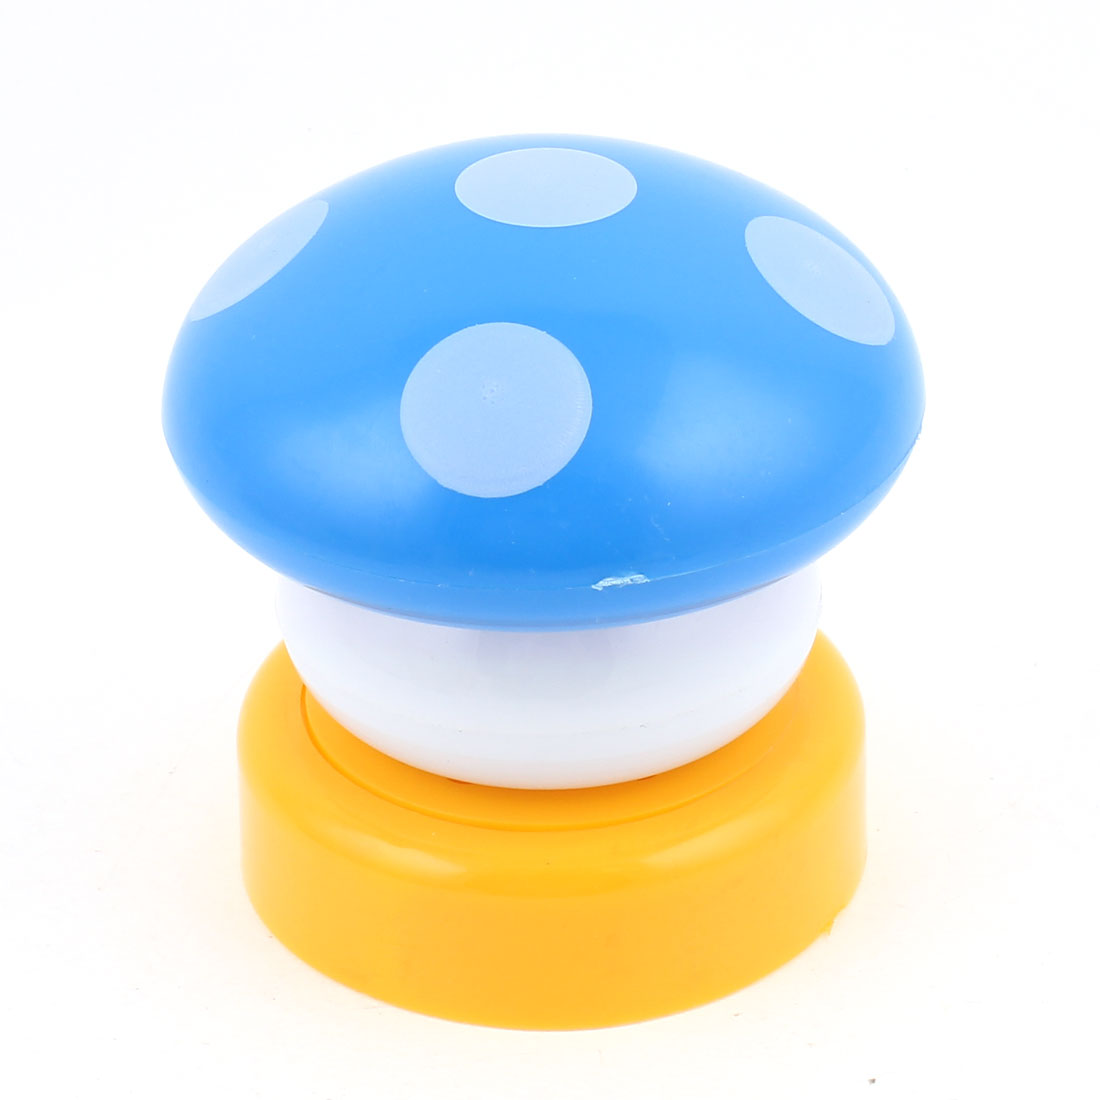 Mushroom Head Press Down Touch LED Lamp Bed Desk Night Light Blue